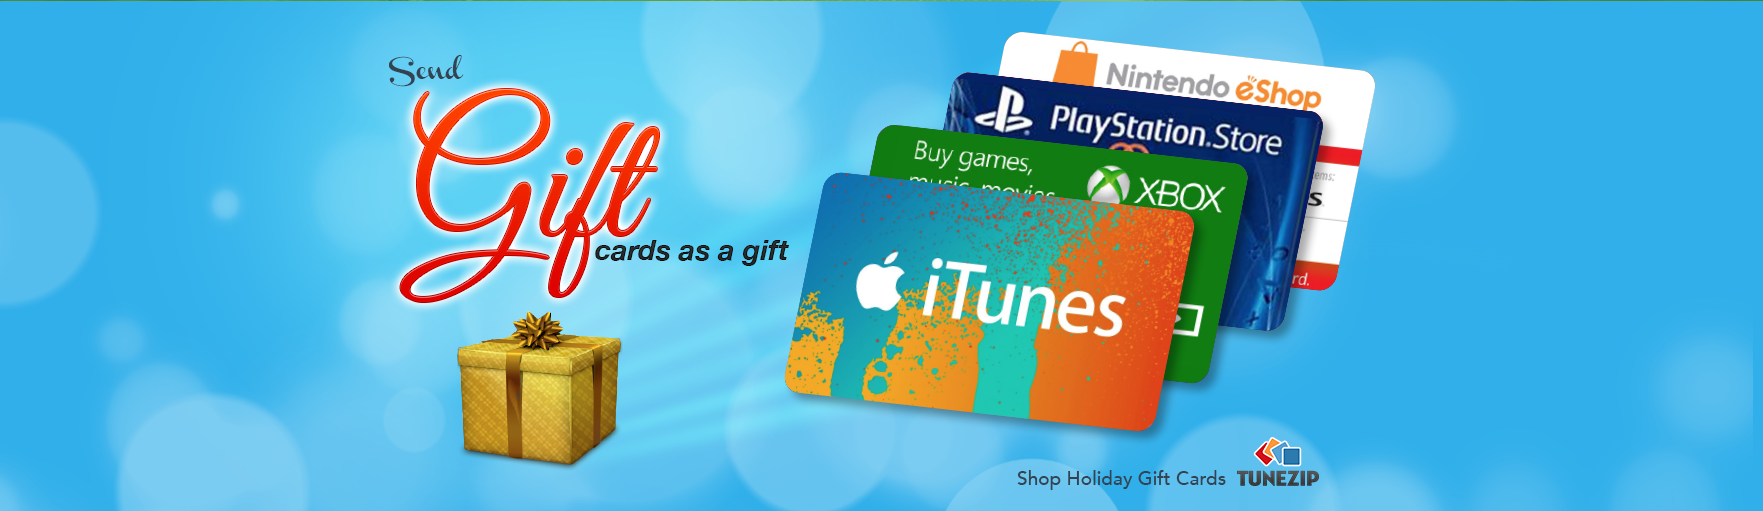 Gift-cards-as-a-gift-new